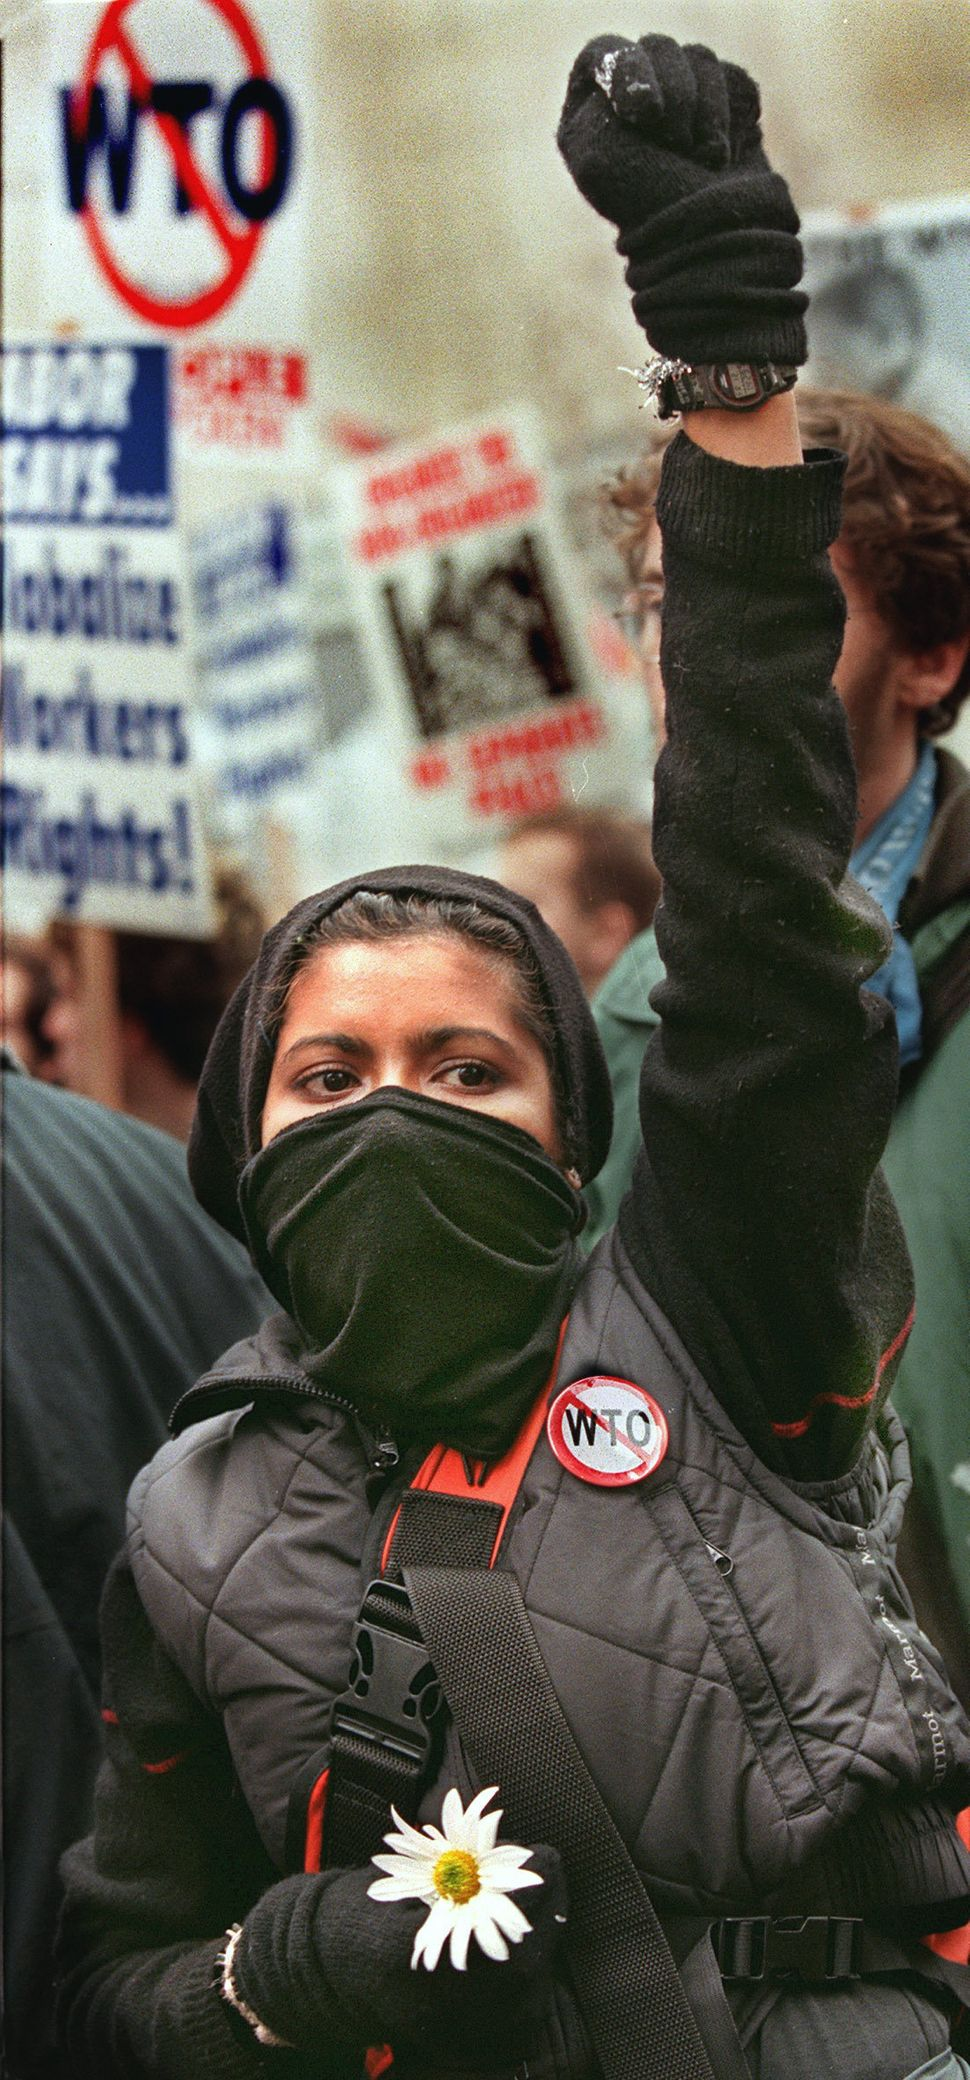 A demonstrator holds a flower that she says is a symbol of hope on Dec. 3, 1999.